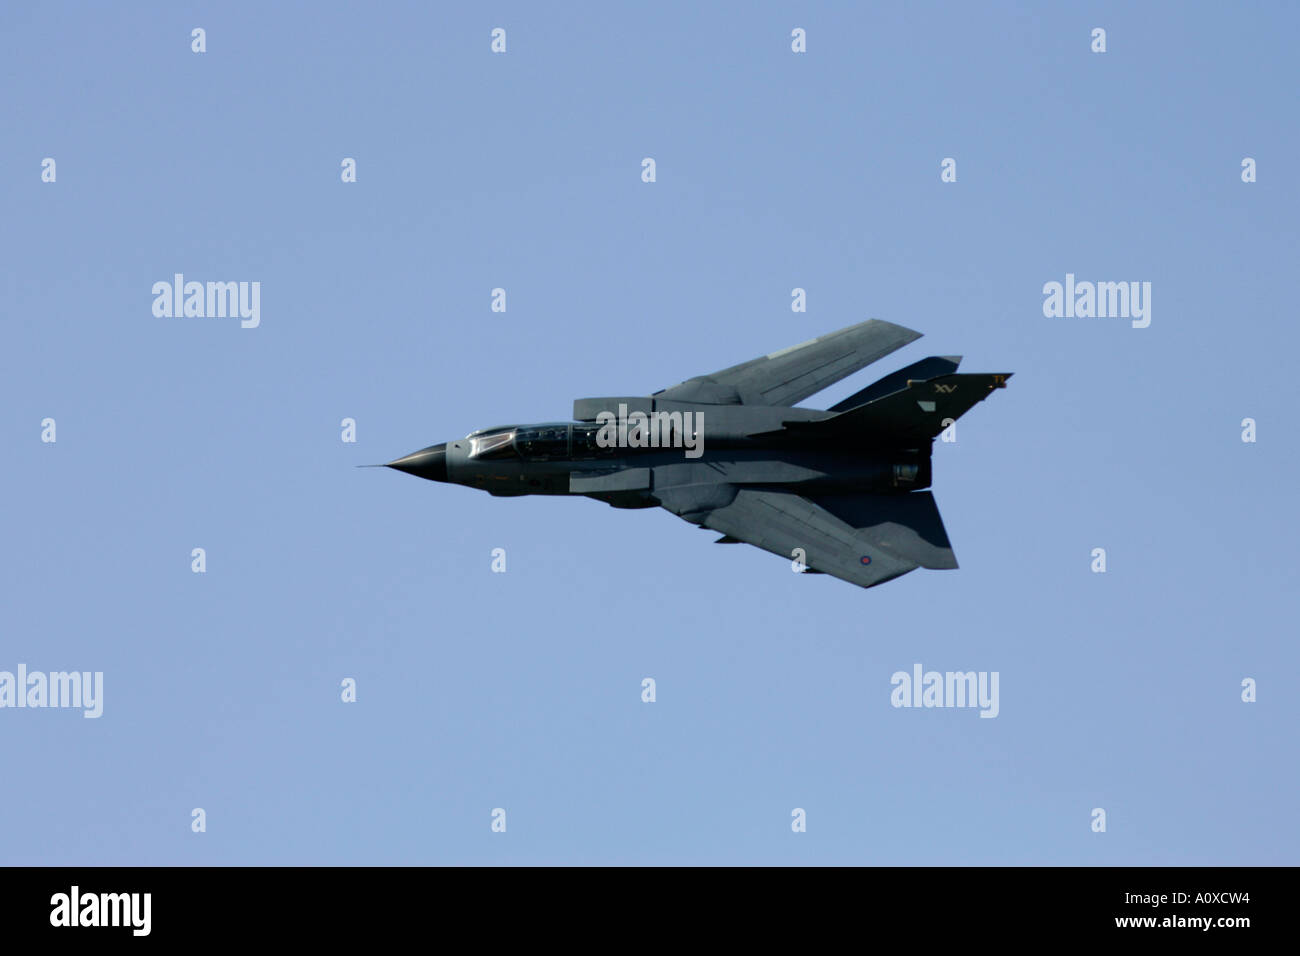 RAF Tornado GR4 flies with wings swept back in blue sky RIAT 2005 RAF Fairford Gloucestershire England UK - Stock Image